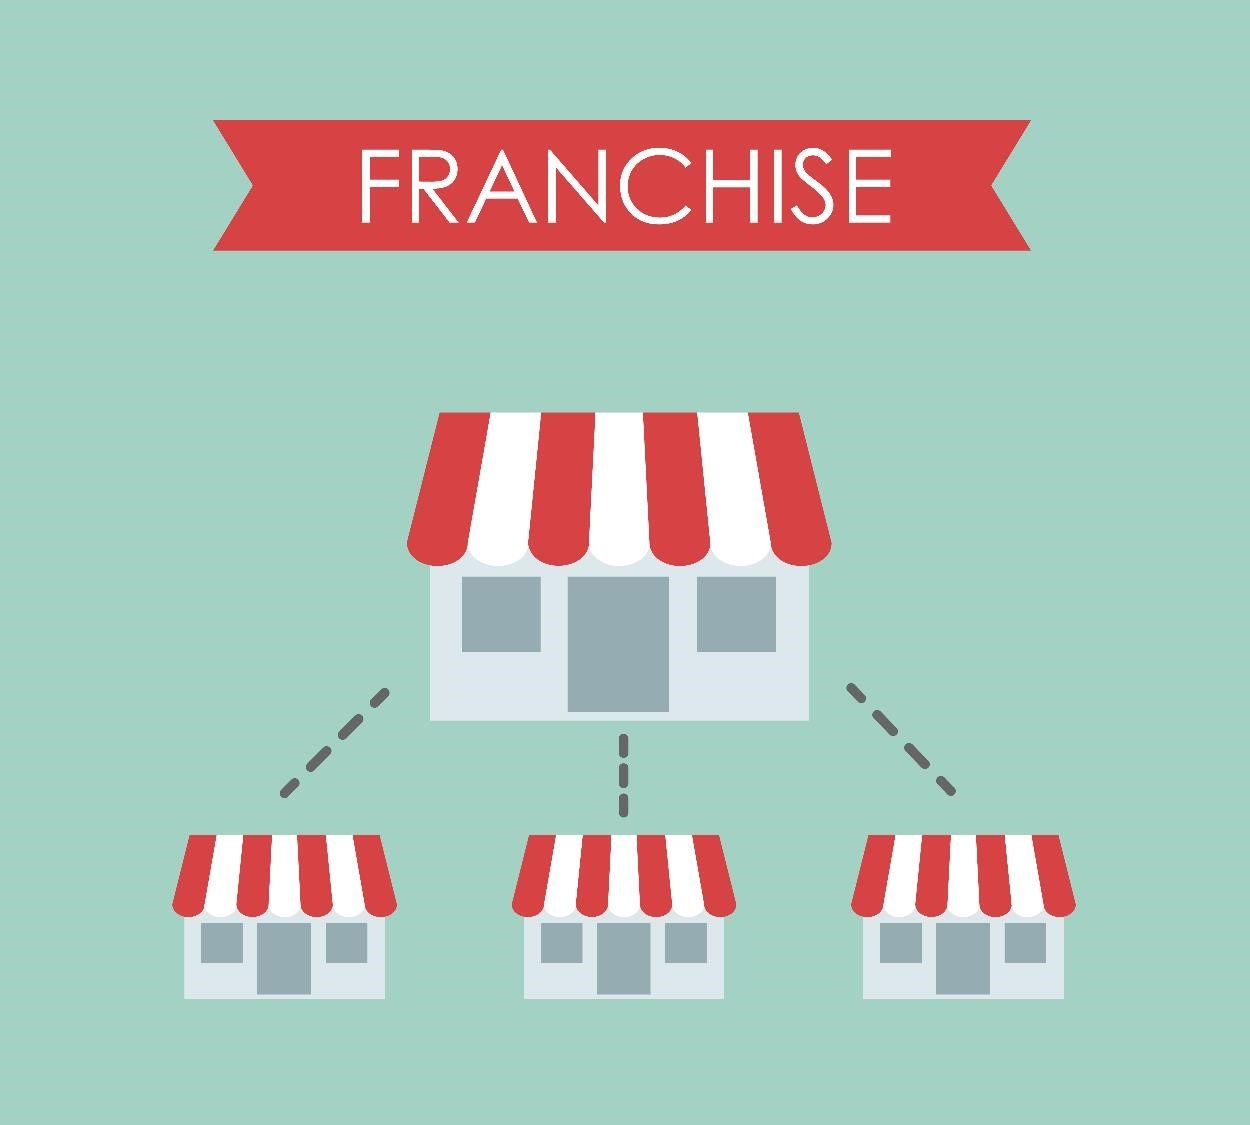 Stock-franchise-sales-development.jpg